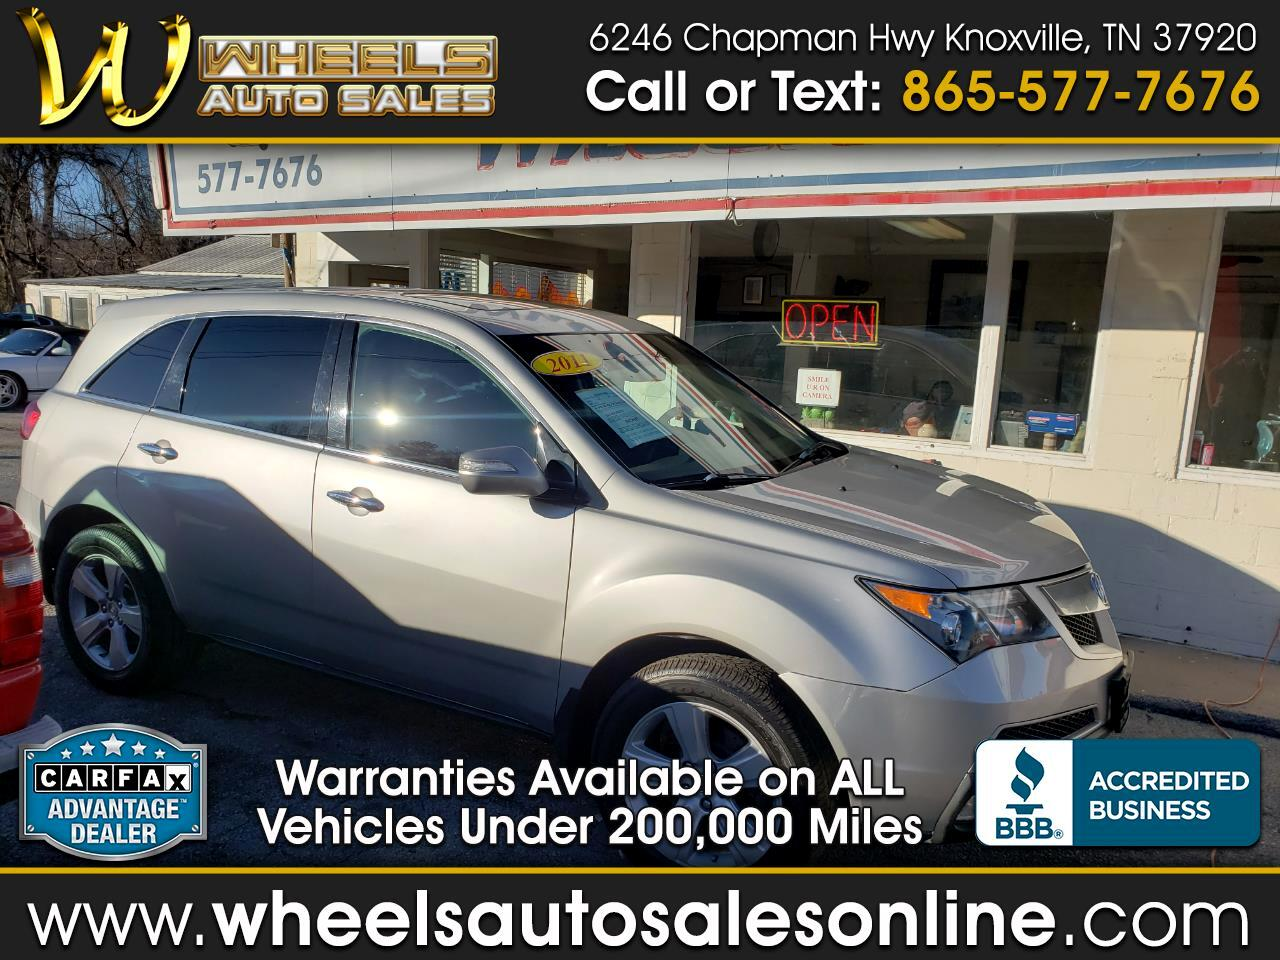 Knoxville Used Cars >> Used Cars For Sale Knoxville Tn 37920 Wheels Auto Sales